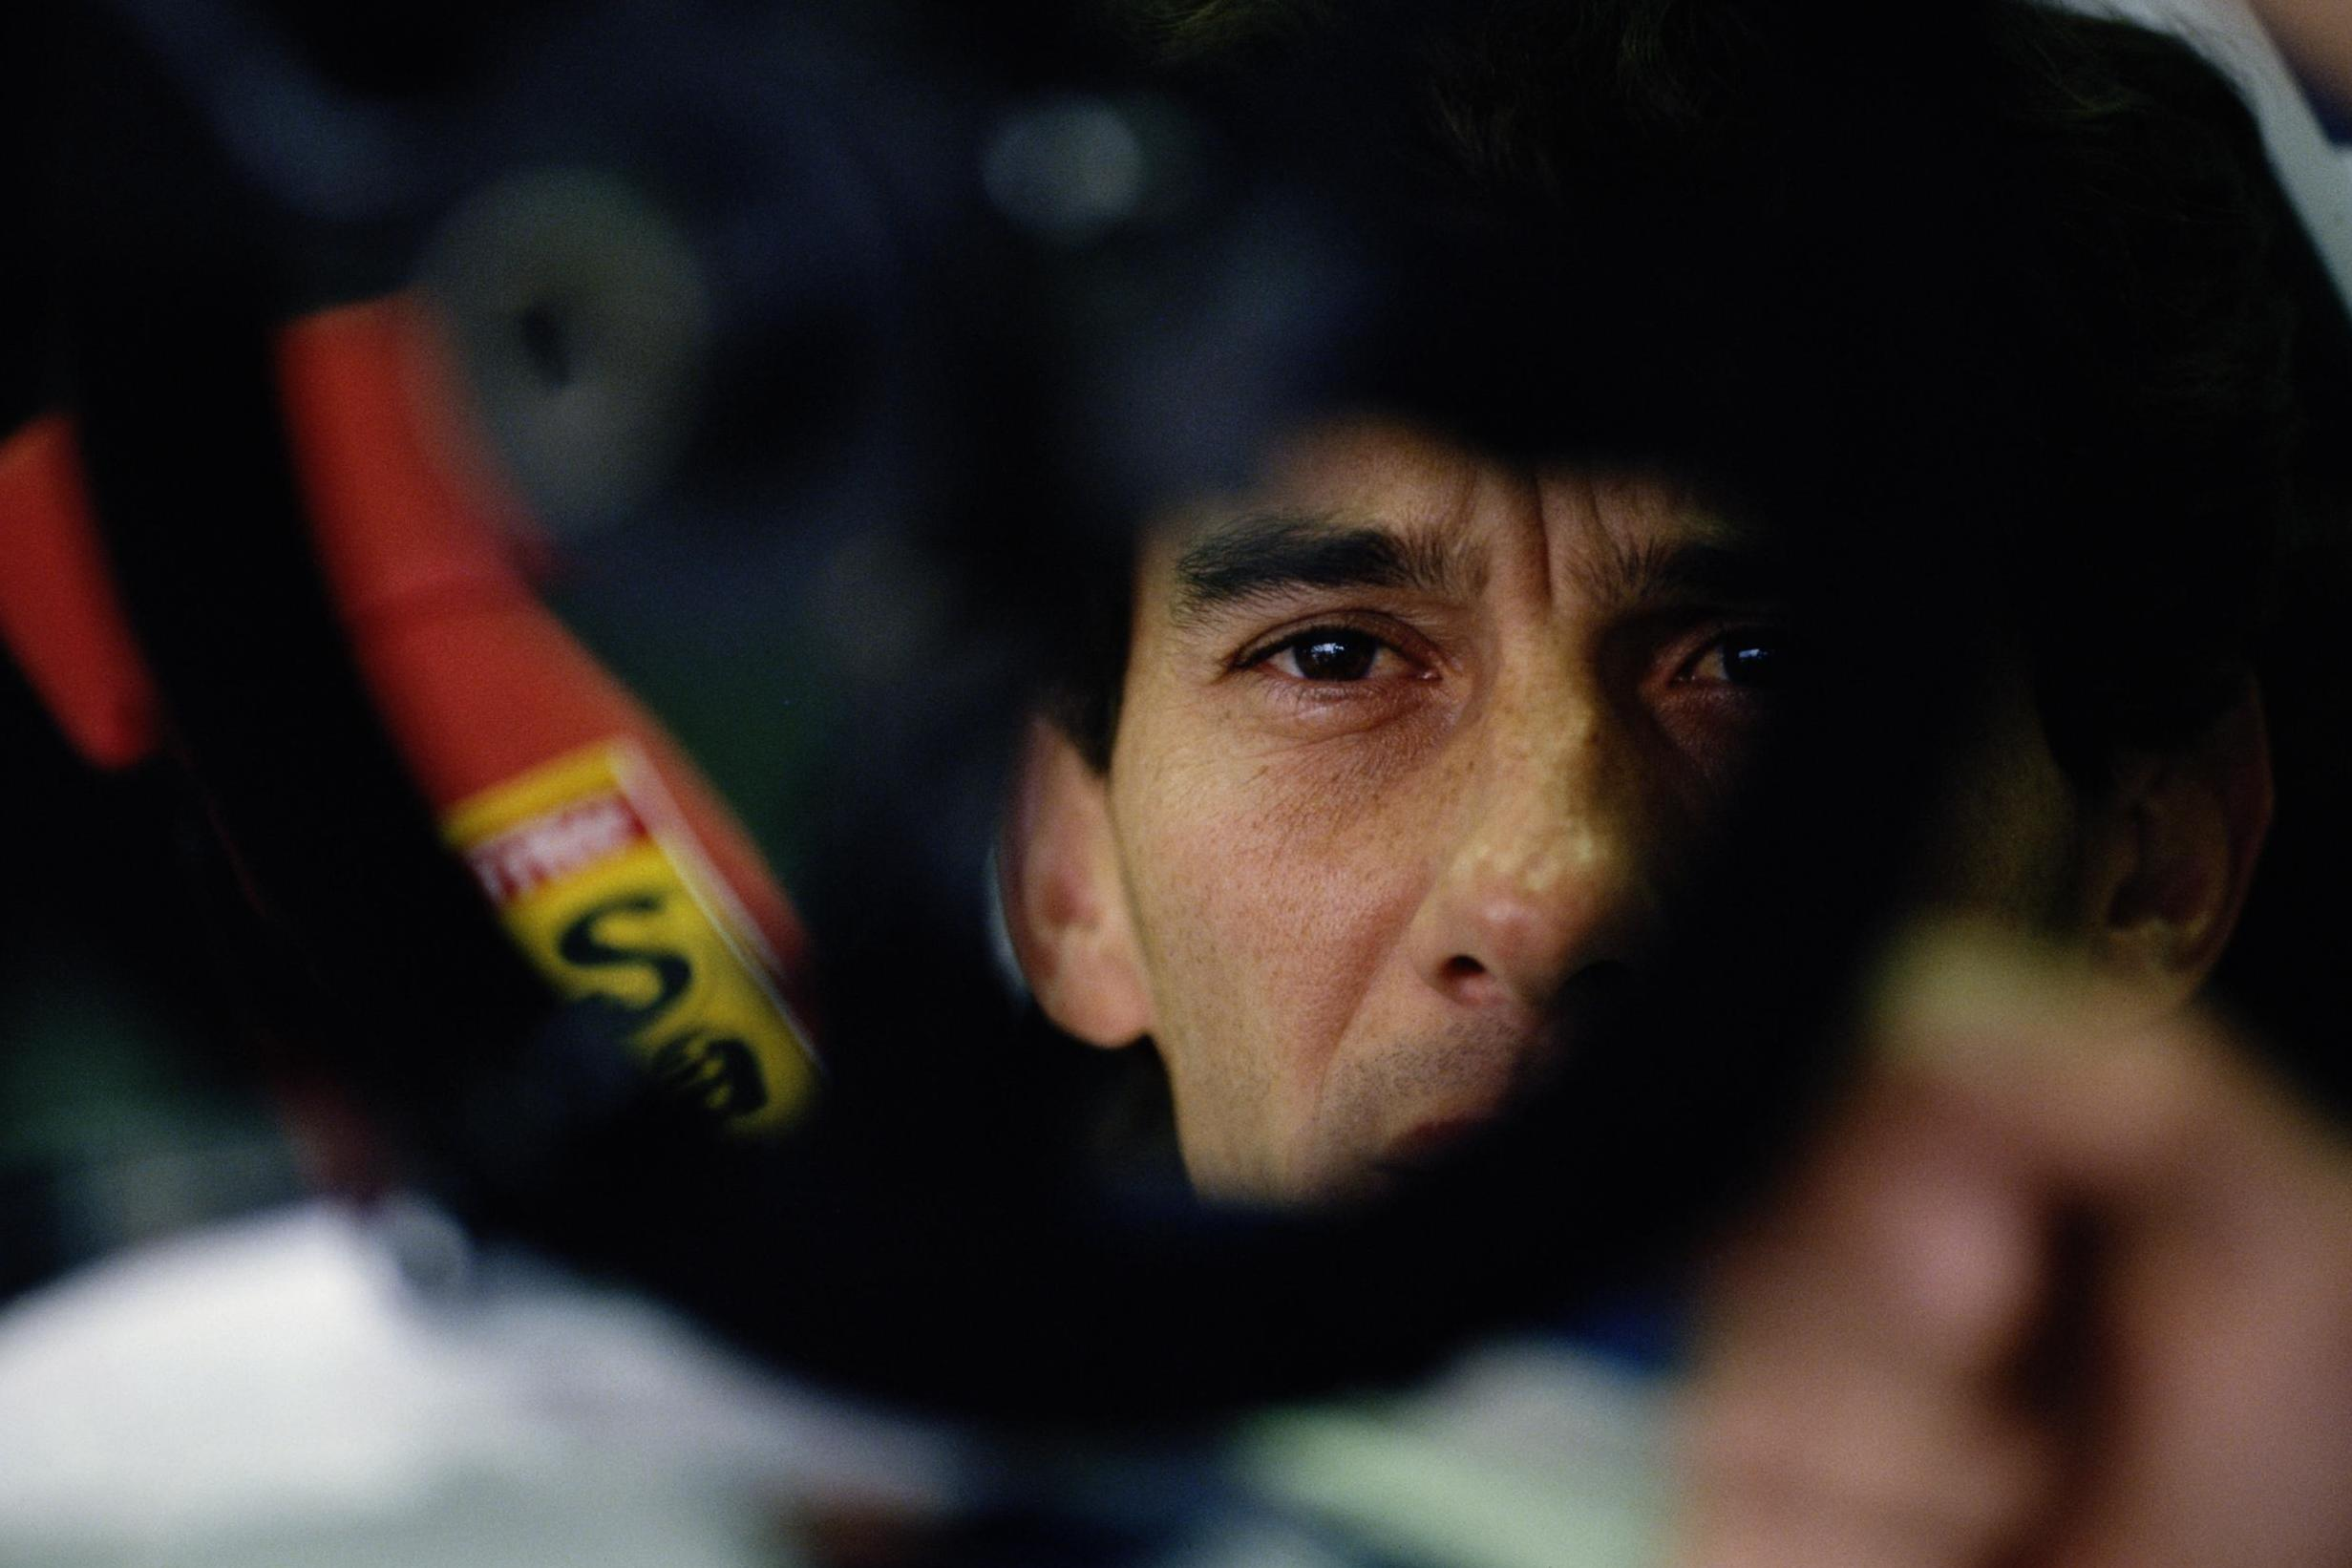 Ayrton Senna just before the start of the San Marino Grand Prix in 1994, where he died